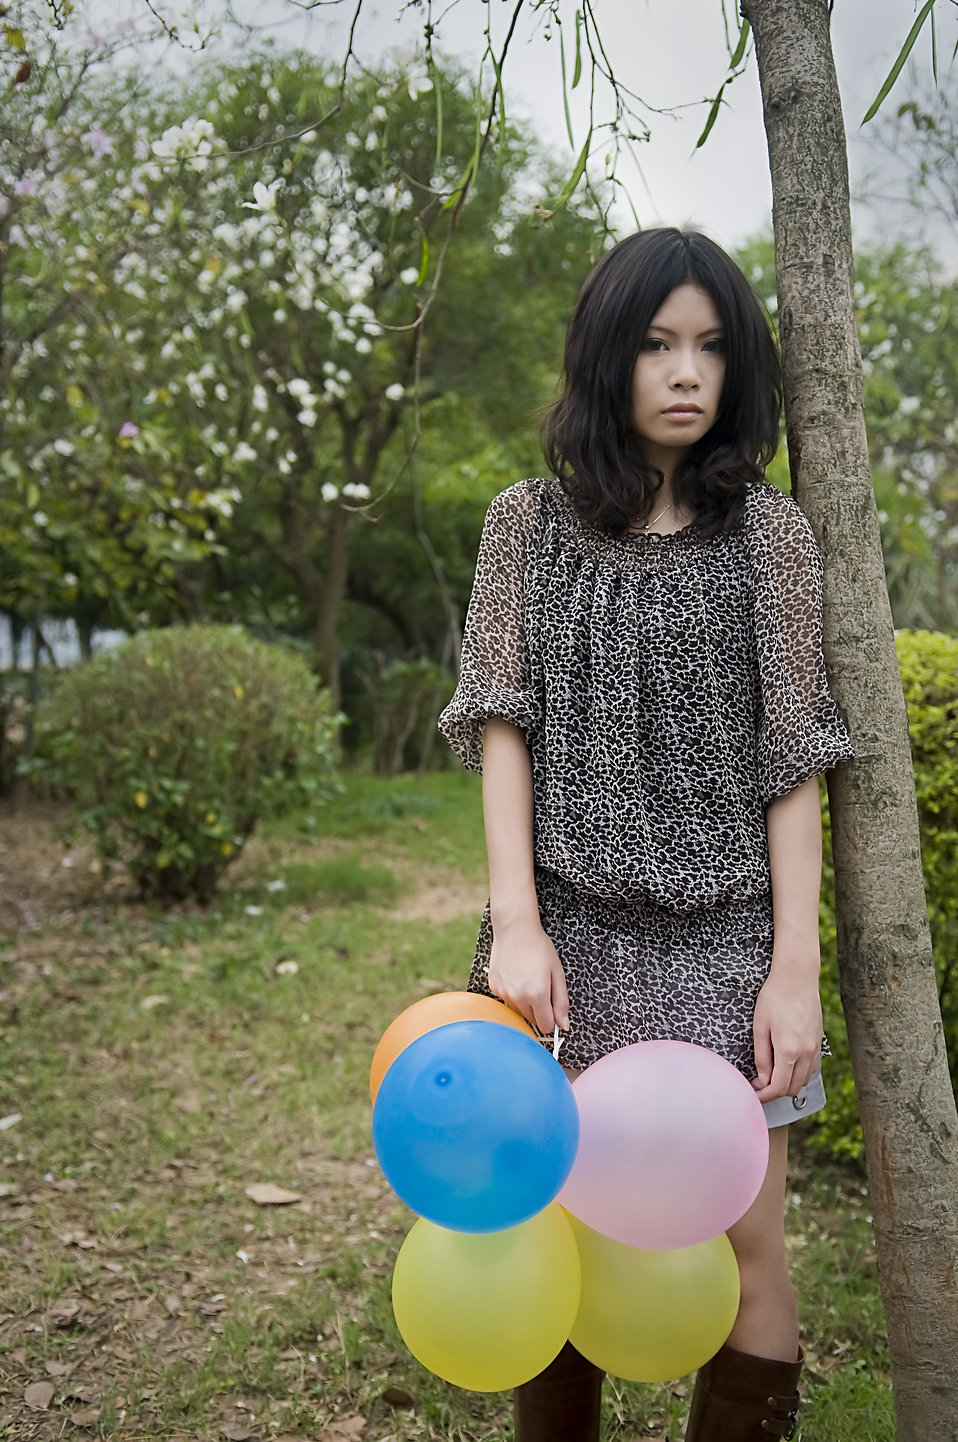 A beautiful Chinese girl posing outdoors with balloons : Free Stock Photo